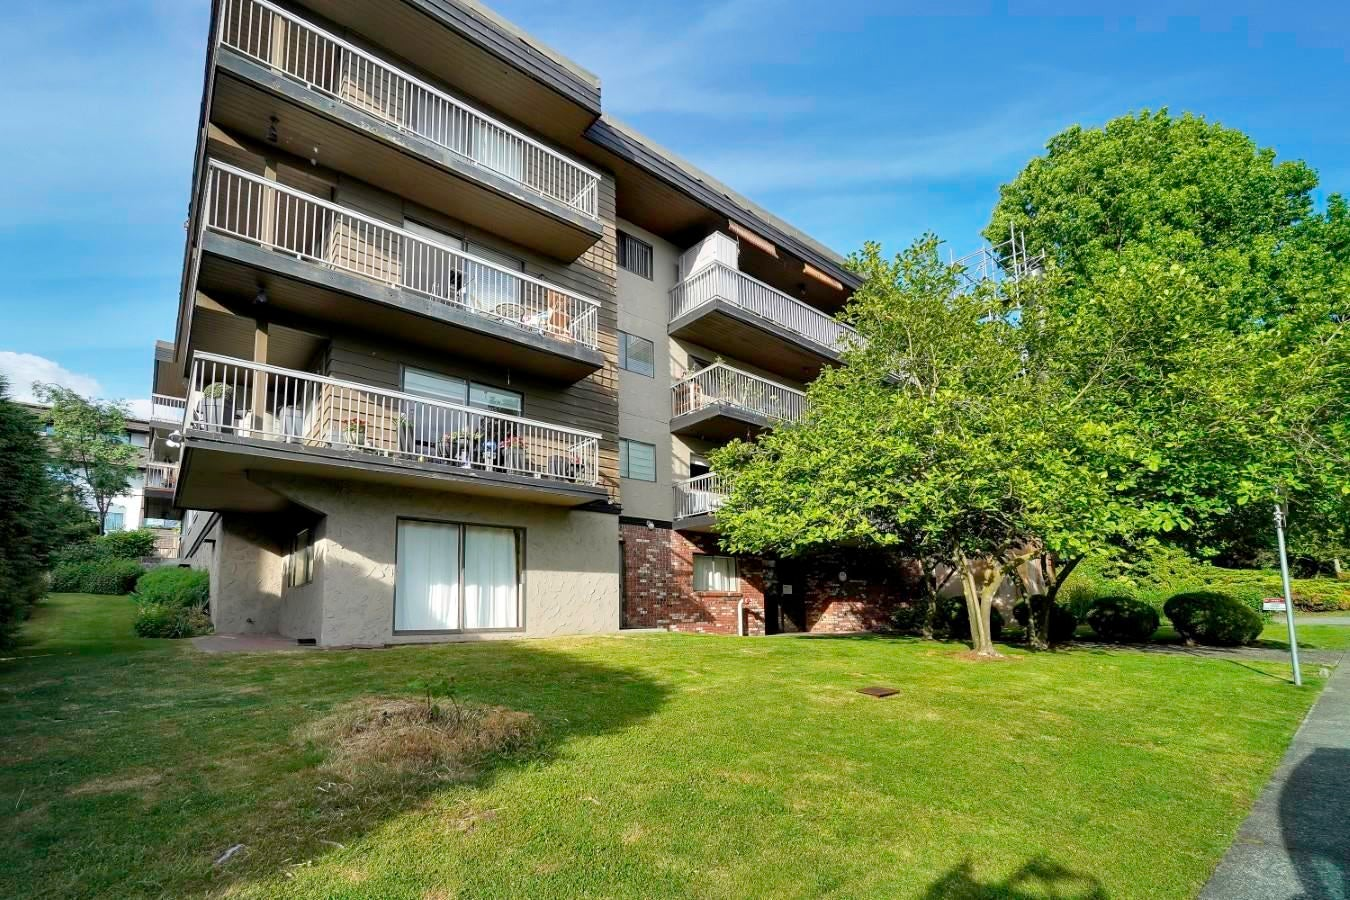 206 330 W 2ND STREET - Lower Lonsdale Apartment/Condo for sale, 2 Bedrooms (R2604160) - #31